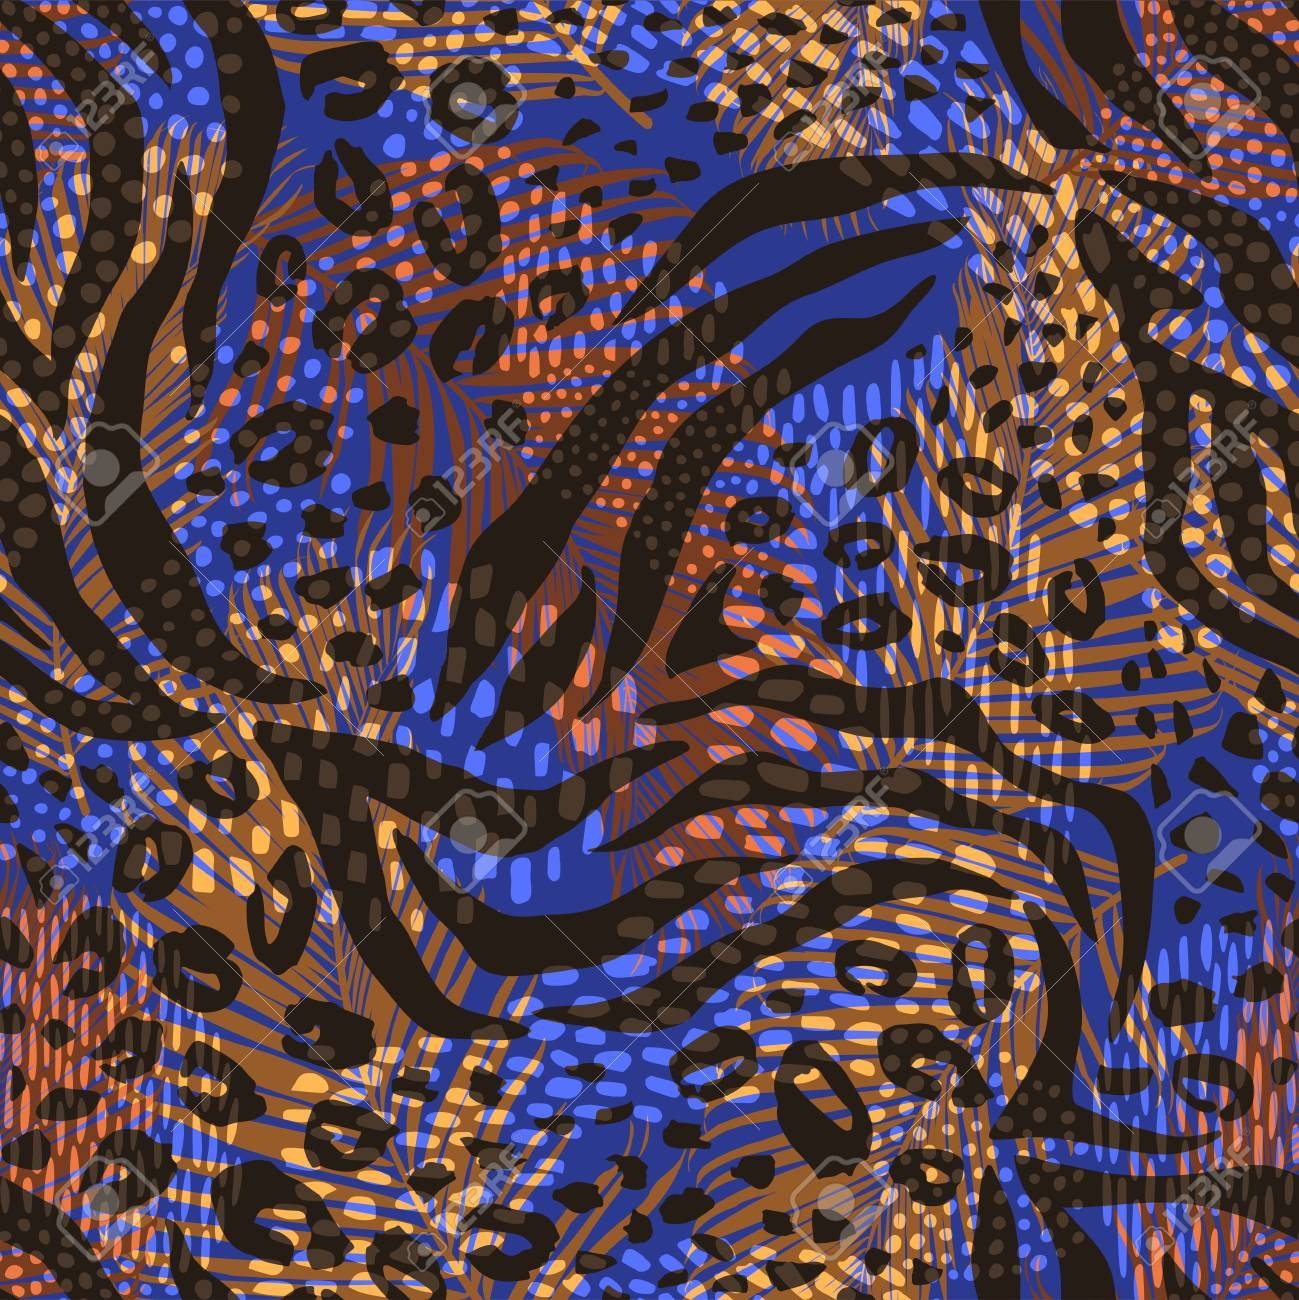 Abstract geometric pattern with animal print - 88081991